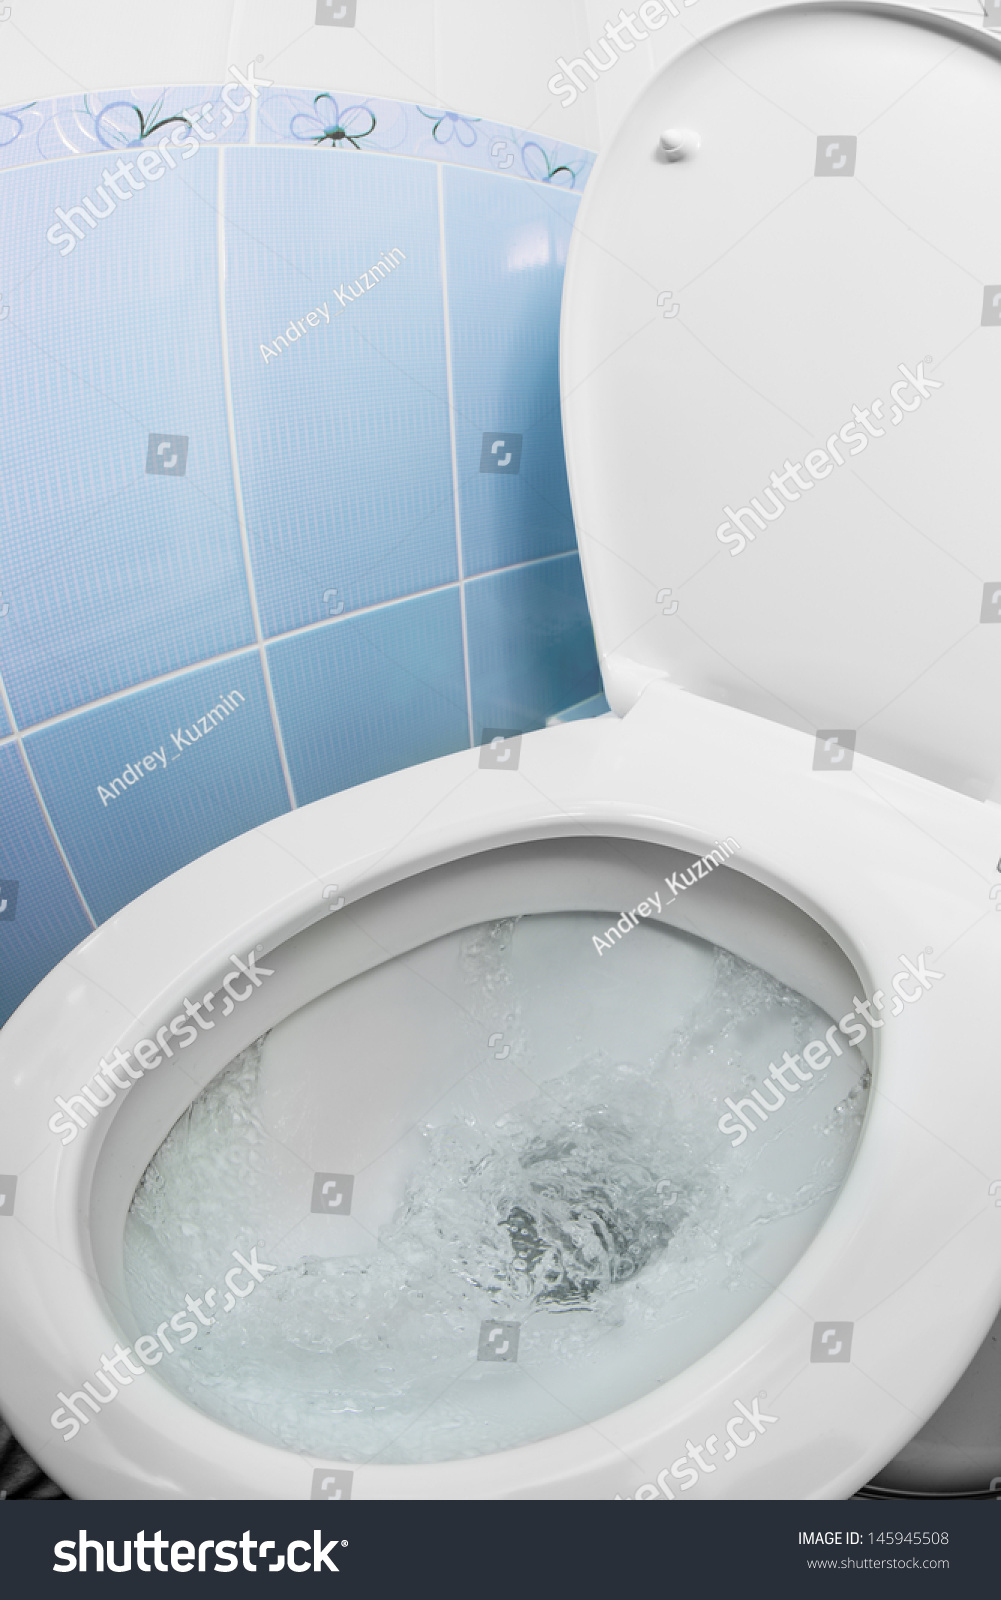 Water Flushing In Toilet Bowl Or Sink Or Wc Stock Photo 145945508 : Shutterstock